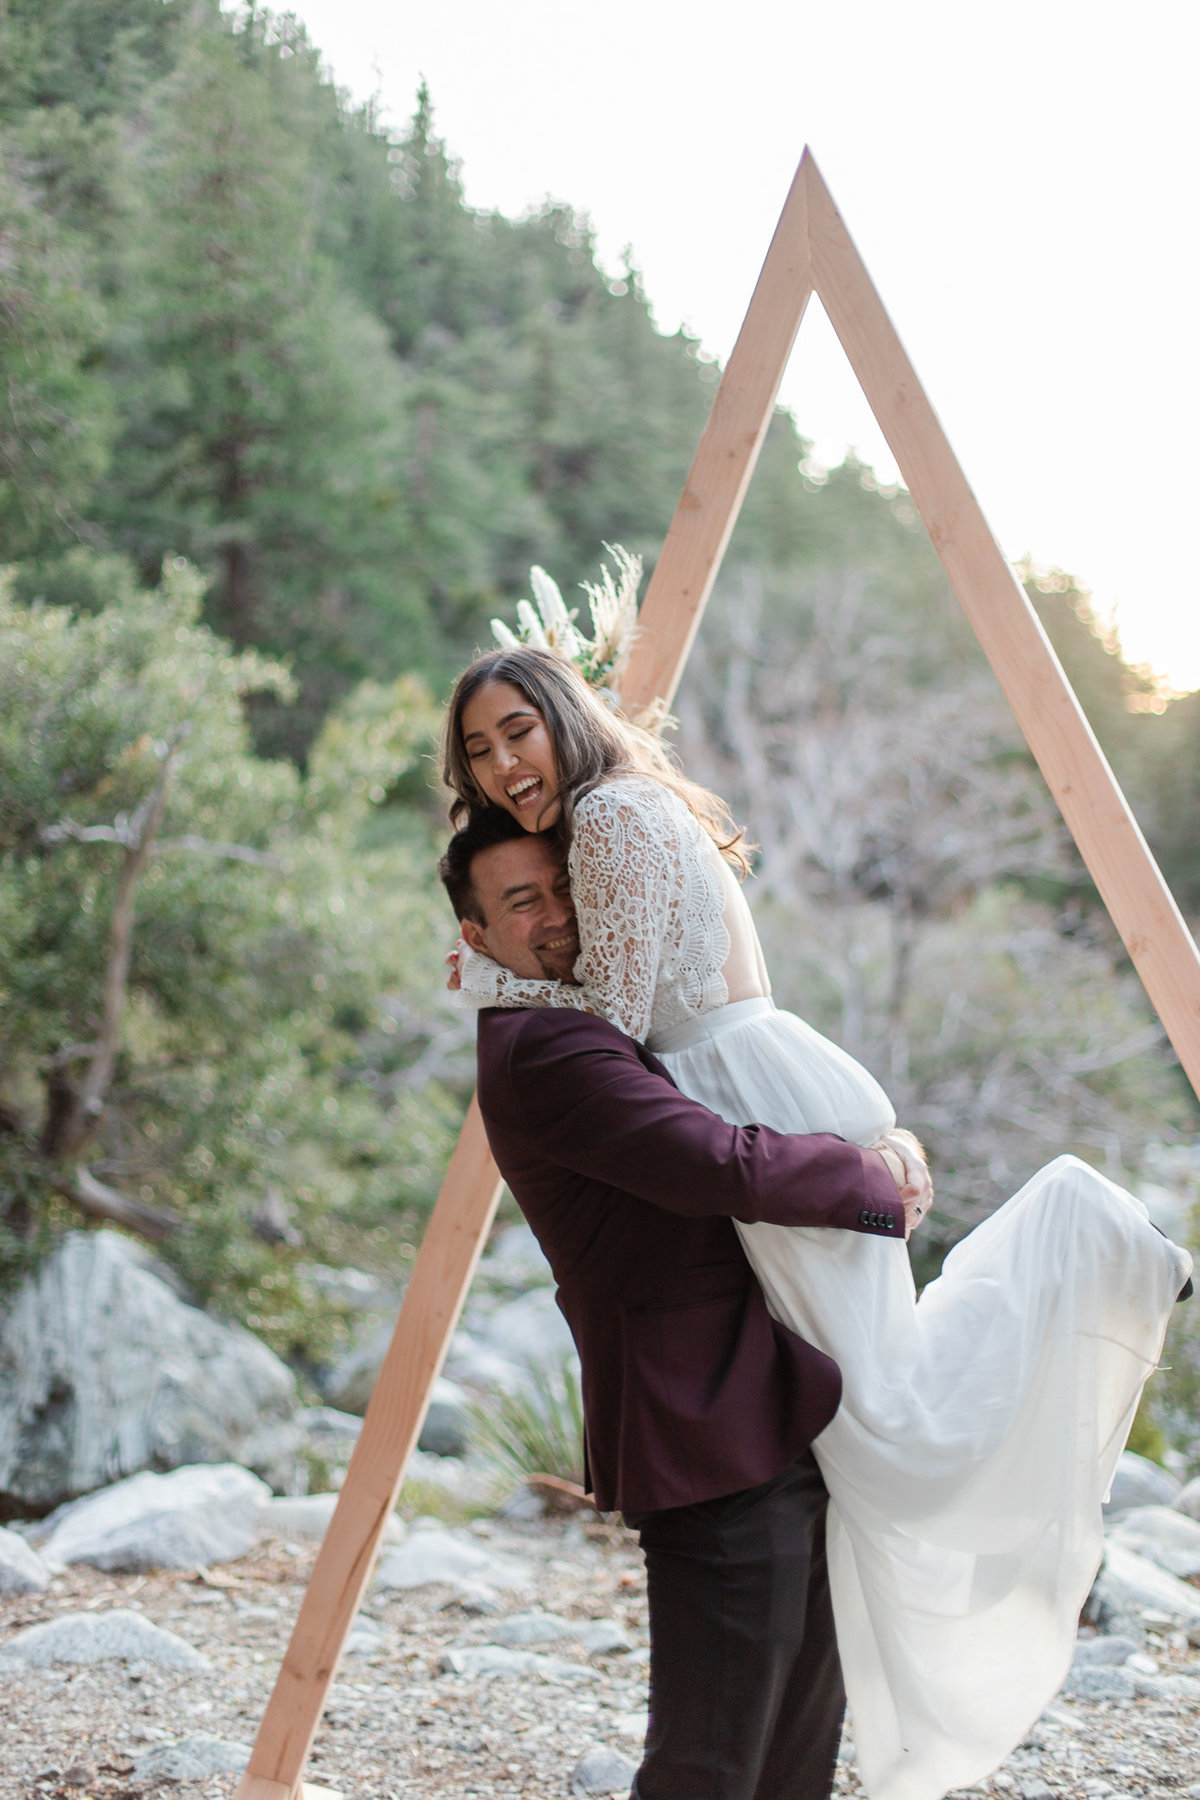 Mt. Baldy Elopement, Mt. Baldy Styled Shoot, Mt. Baldy Wedding, Forest Elopement, Forest Wedding, Boho Wedding, Boho Elopement, Mt. Baldy Boho, Forest Boho, Woodland Boho-50